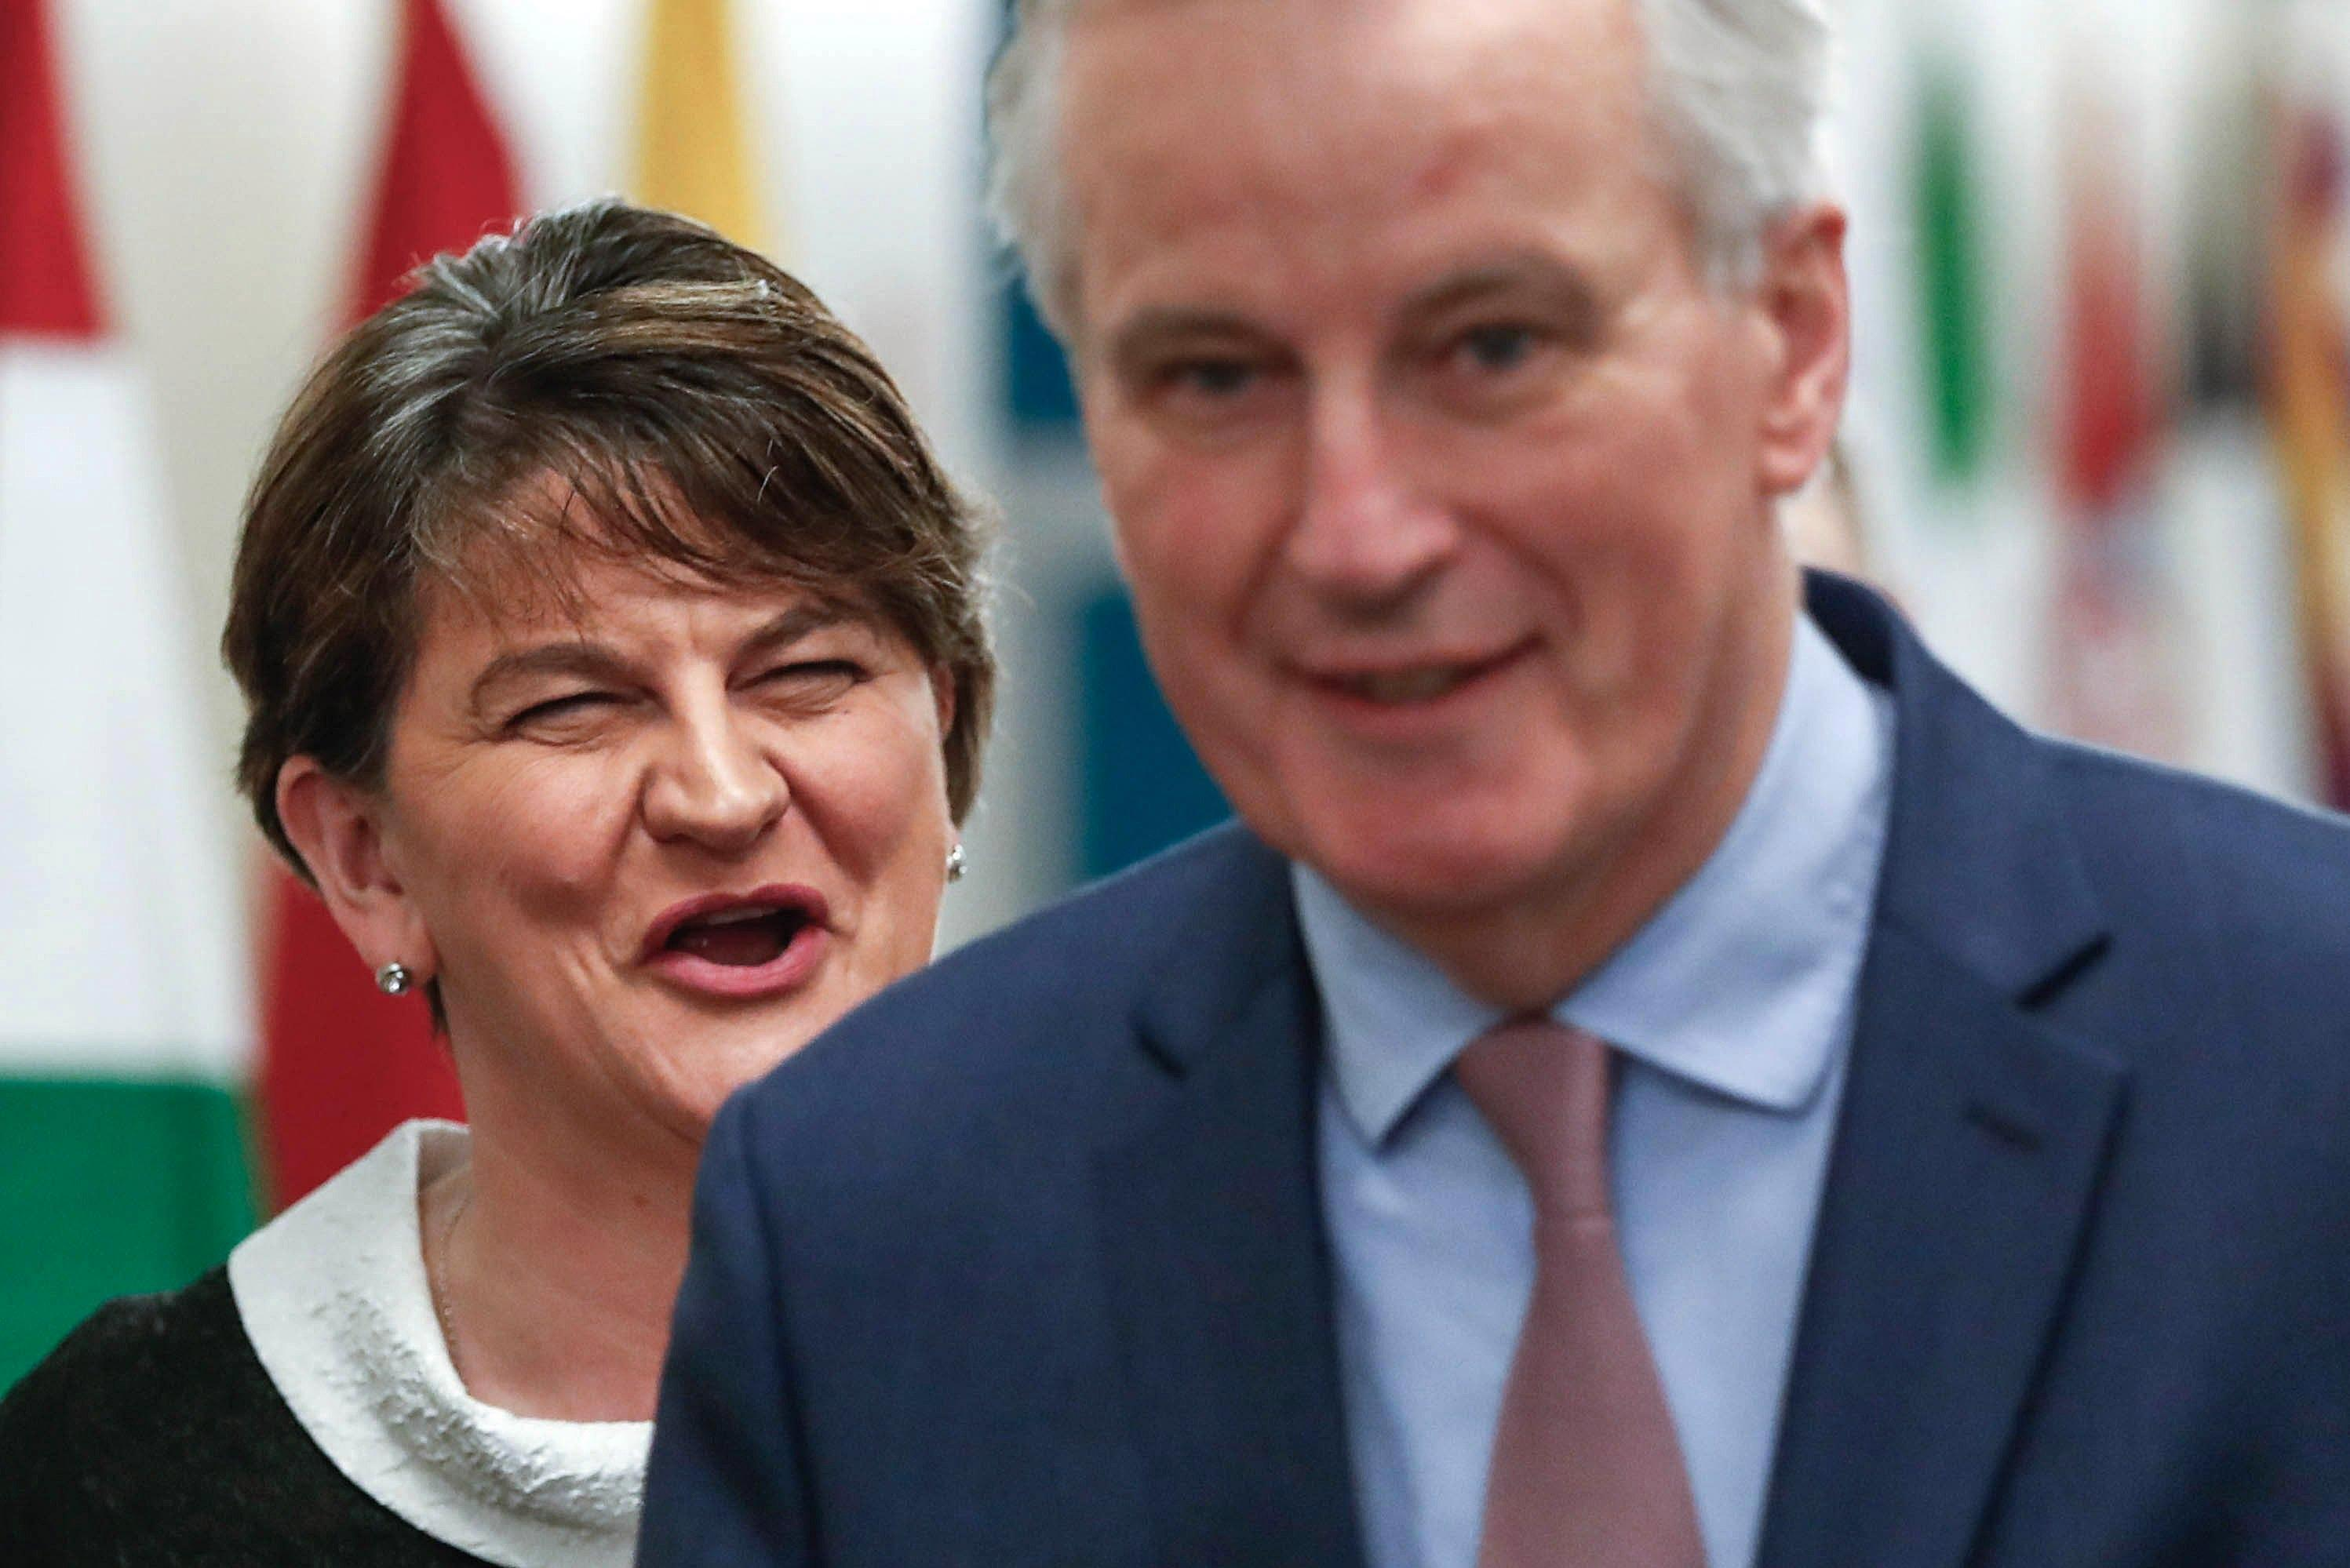 Arlene Foster accuses EU of being unfaithful' by editing key Northern Ireland text from Brexit plans and blasts Michel Barnier for trying to break up the UK